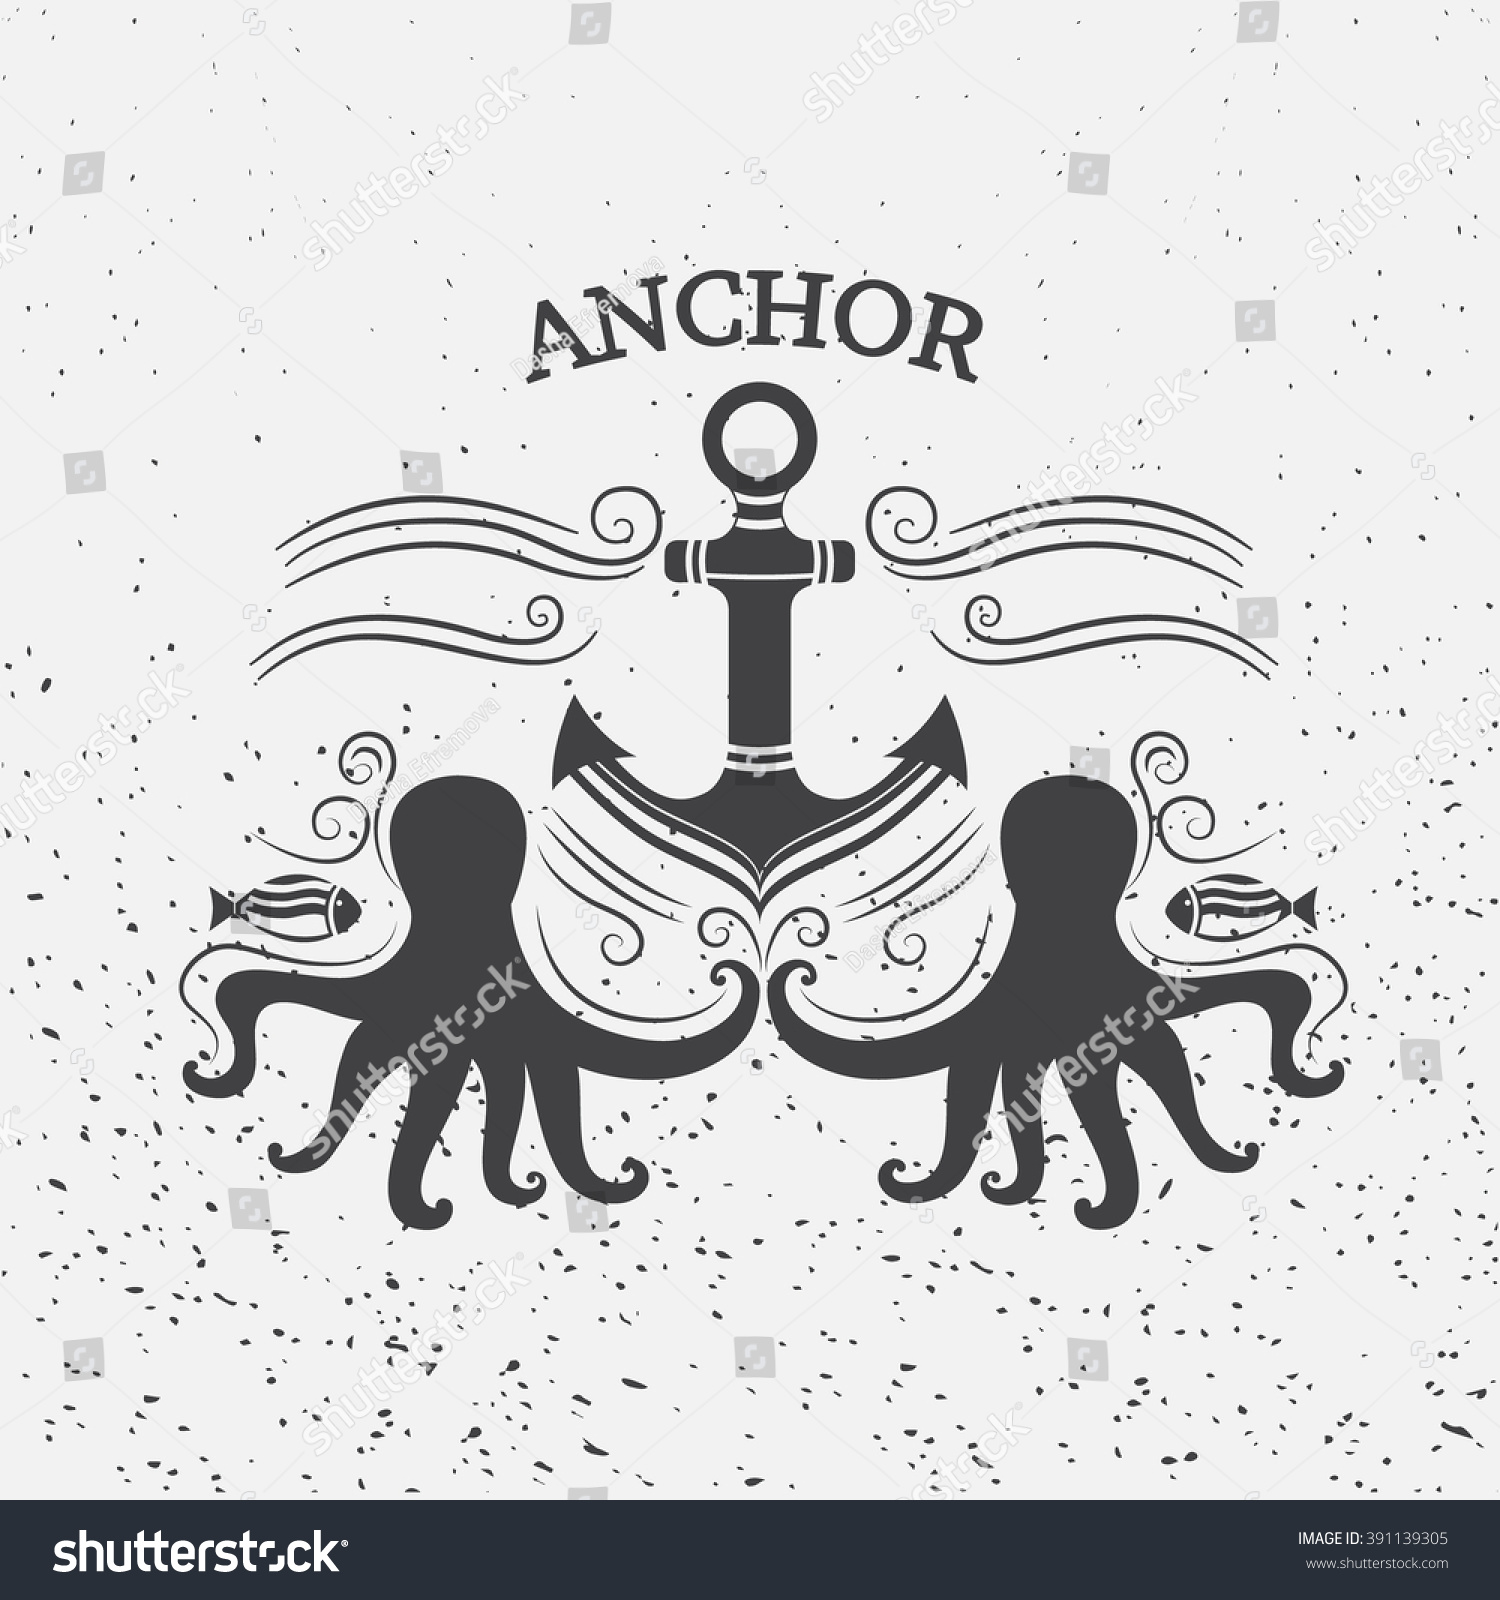 Shirt design octopus - Vintage Label With Anchor And Octopus Sea Vector Illustration For T Shirt Design